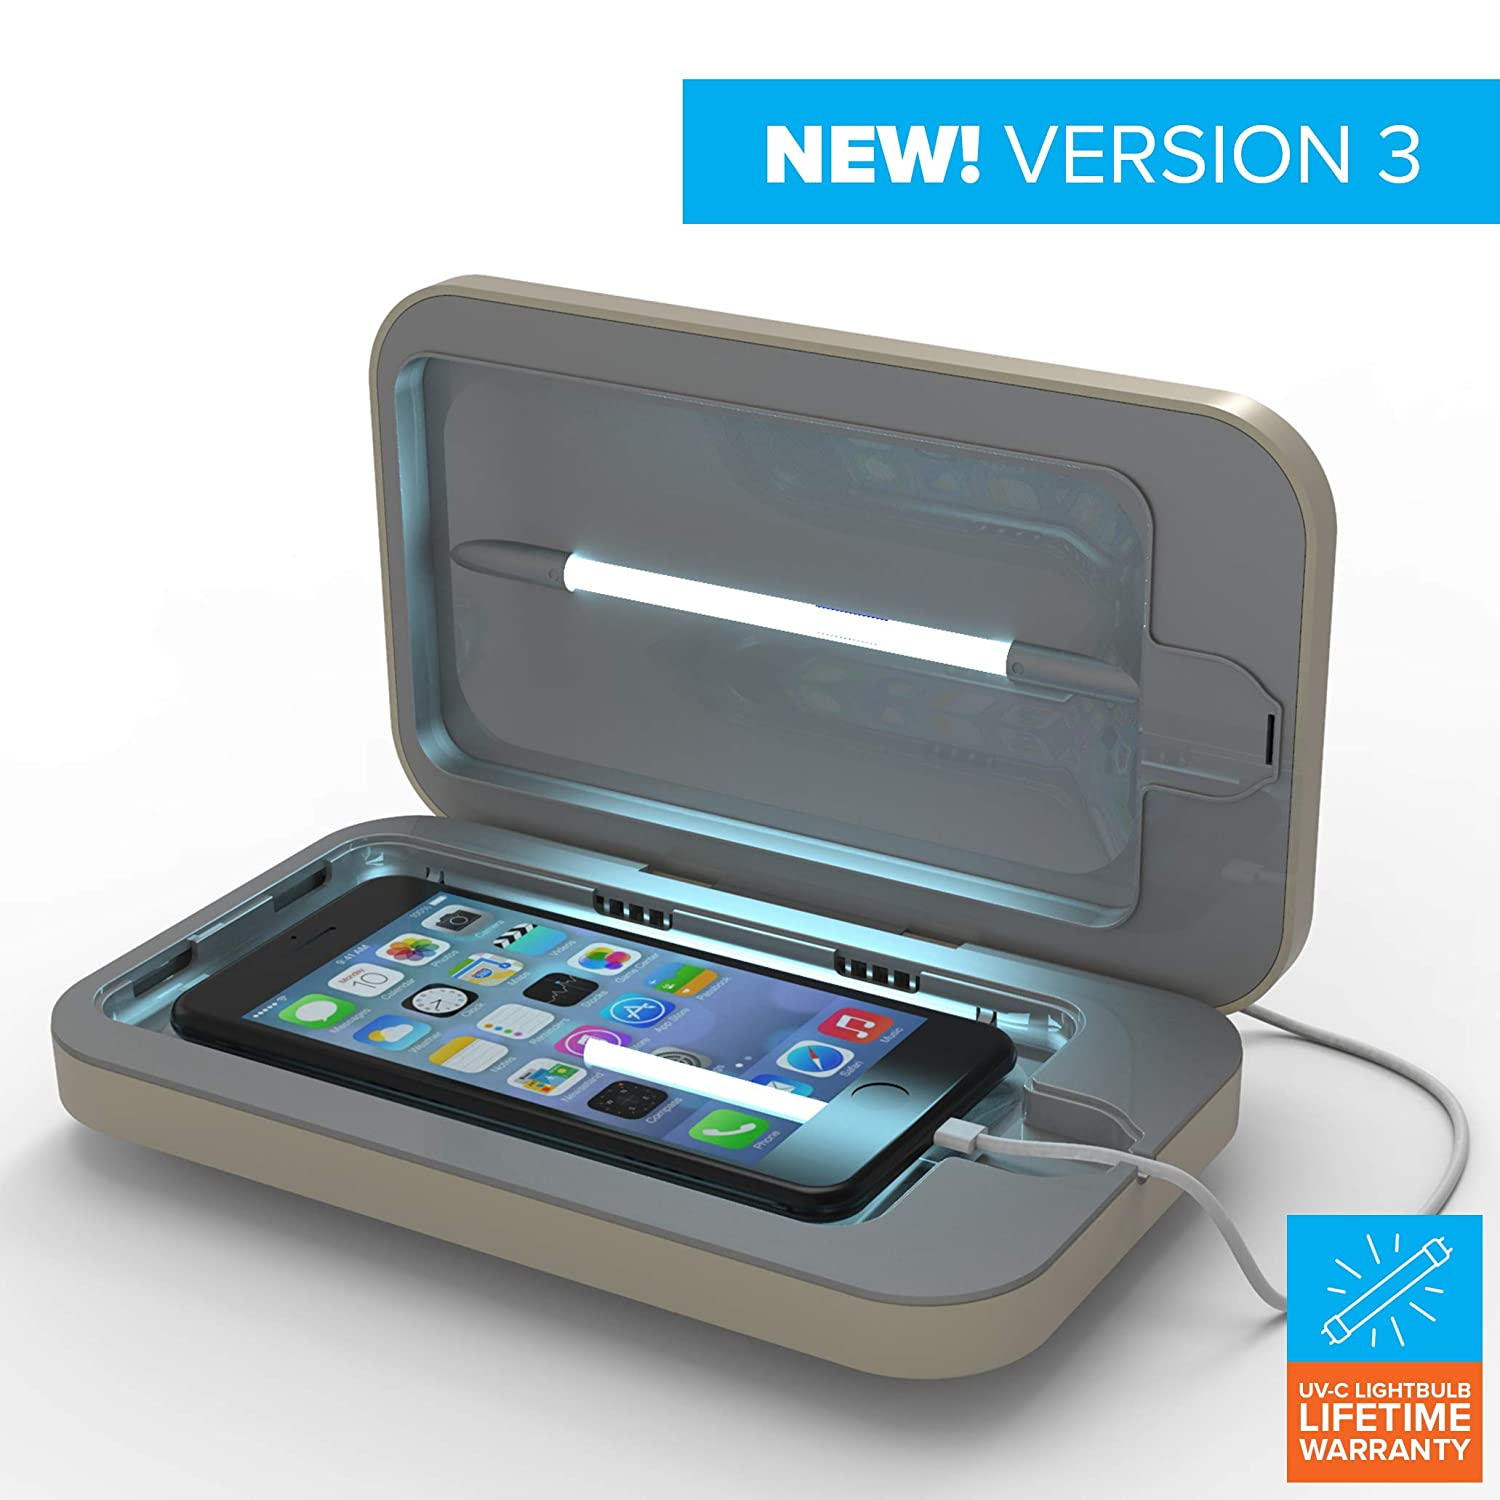 PhoneSoap 3 UV Cell Phone Sanitizer and Dual Universal Cell Phone Charger   Patented and Clinically Proven UV Light Sanitizer   Cleans and Charges All Phones - Sand